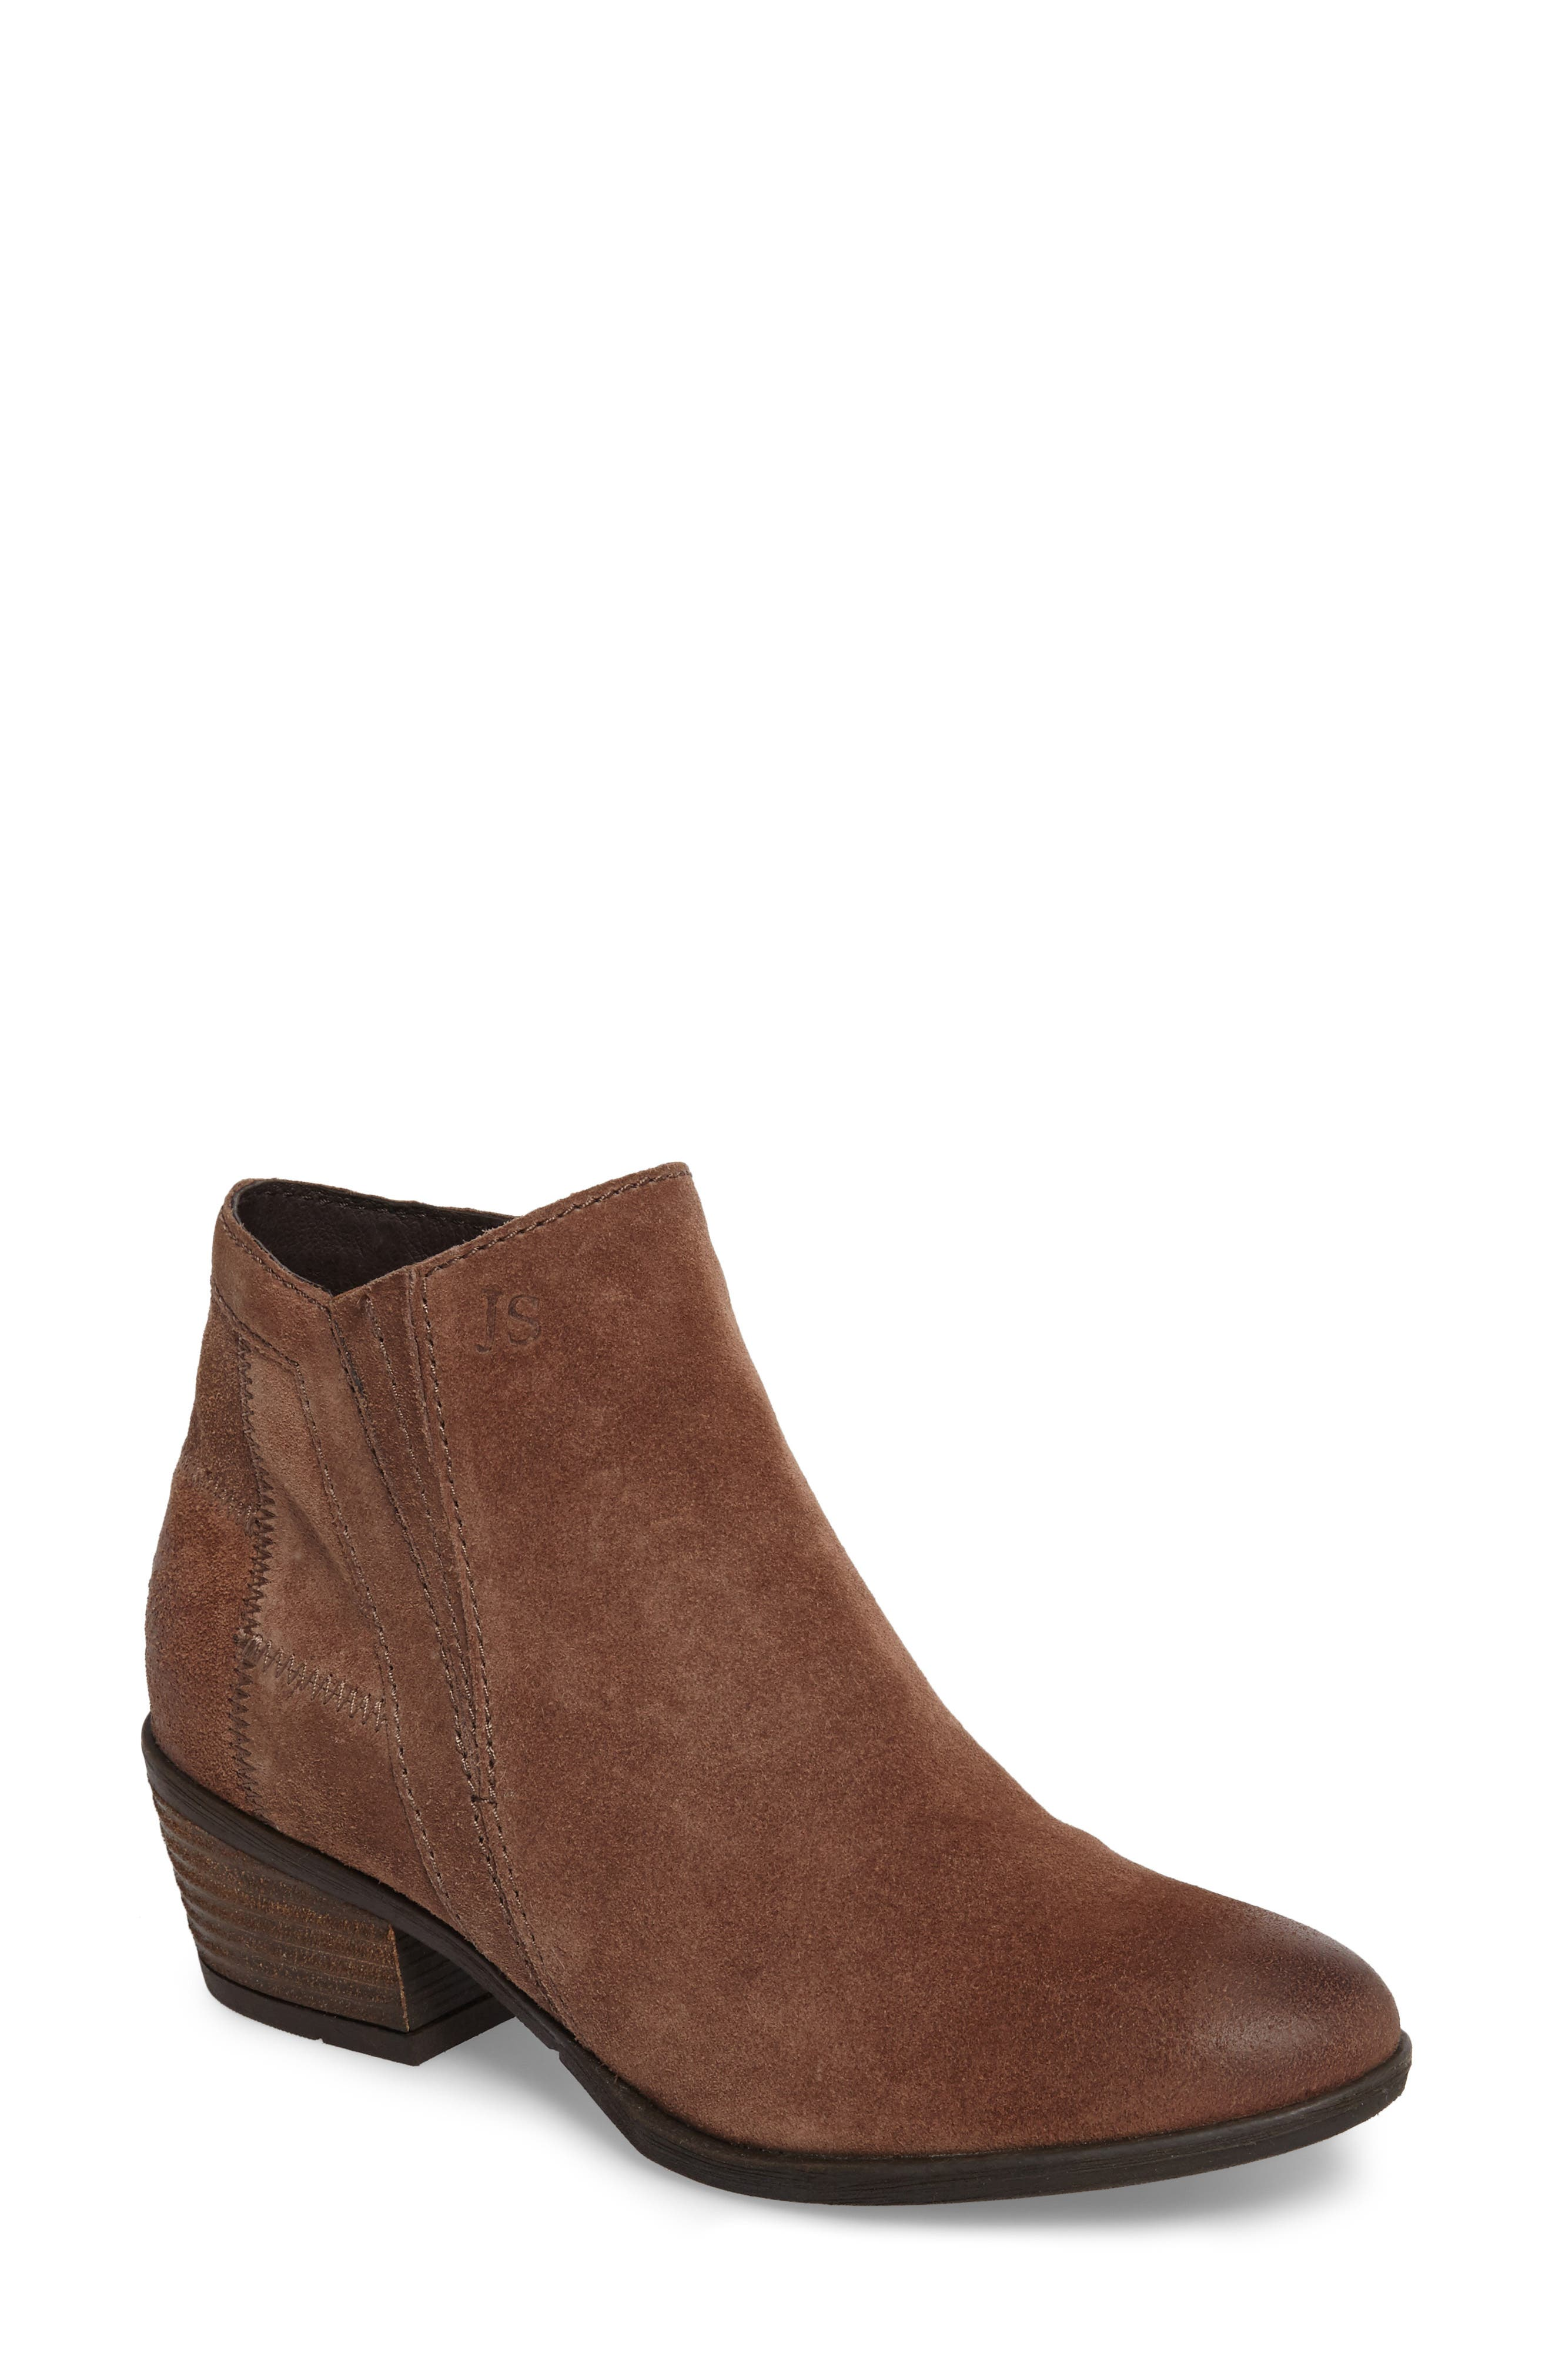 Daphne Bootie,                         Main,                         color, Brown Leather